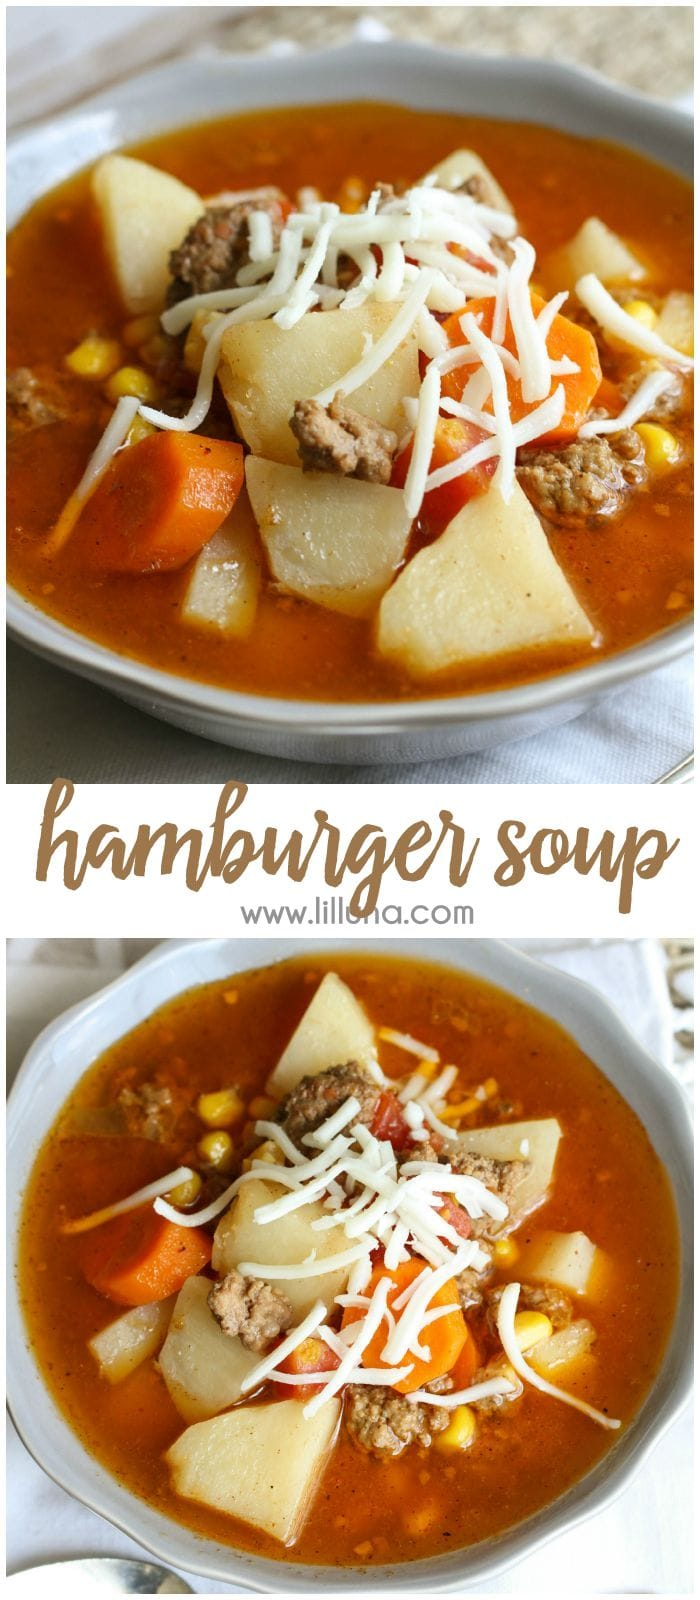 Hearty and delicious Hamburger Soup that is filled with corn, carrots, potatoes and more! Get the recipe on { lilluna.com }